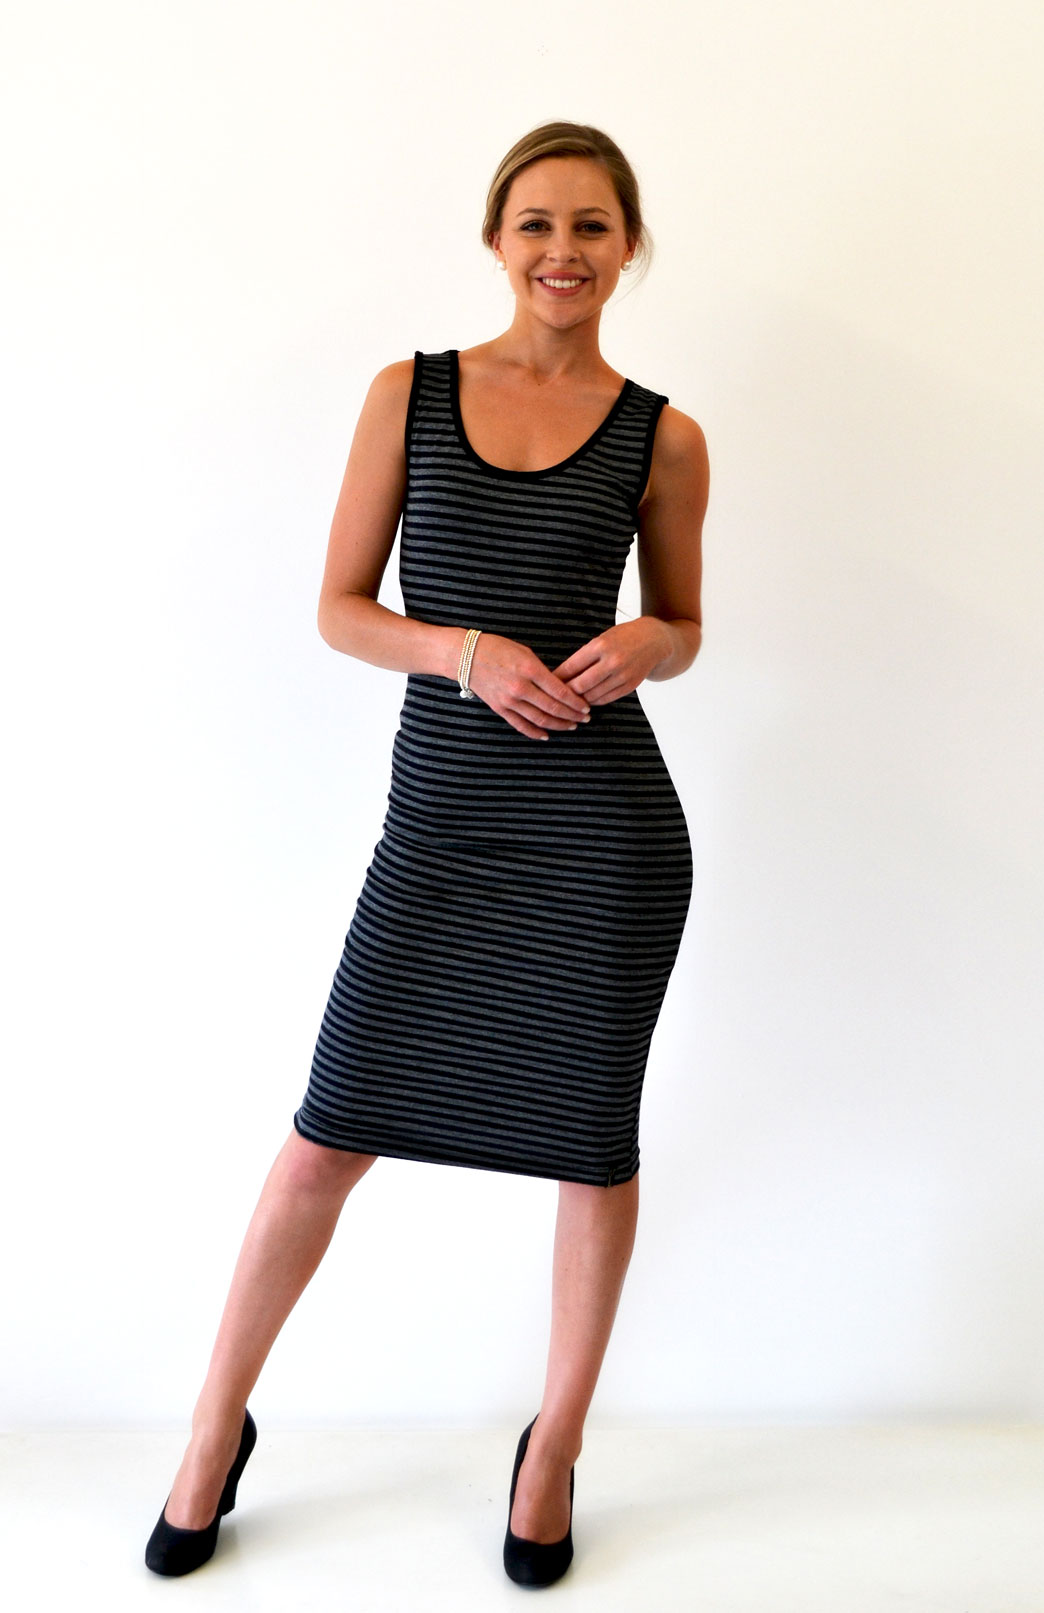 Scoop Neck Dress - Sleeveless - Women's Merino Wool Black and Grey Stripe Sleeveless Scoop Neck Dress - Smitten Merino Tasmania Australia